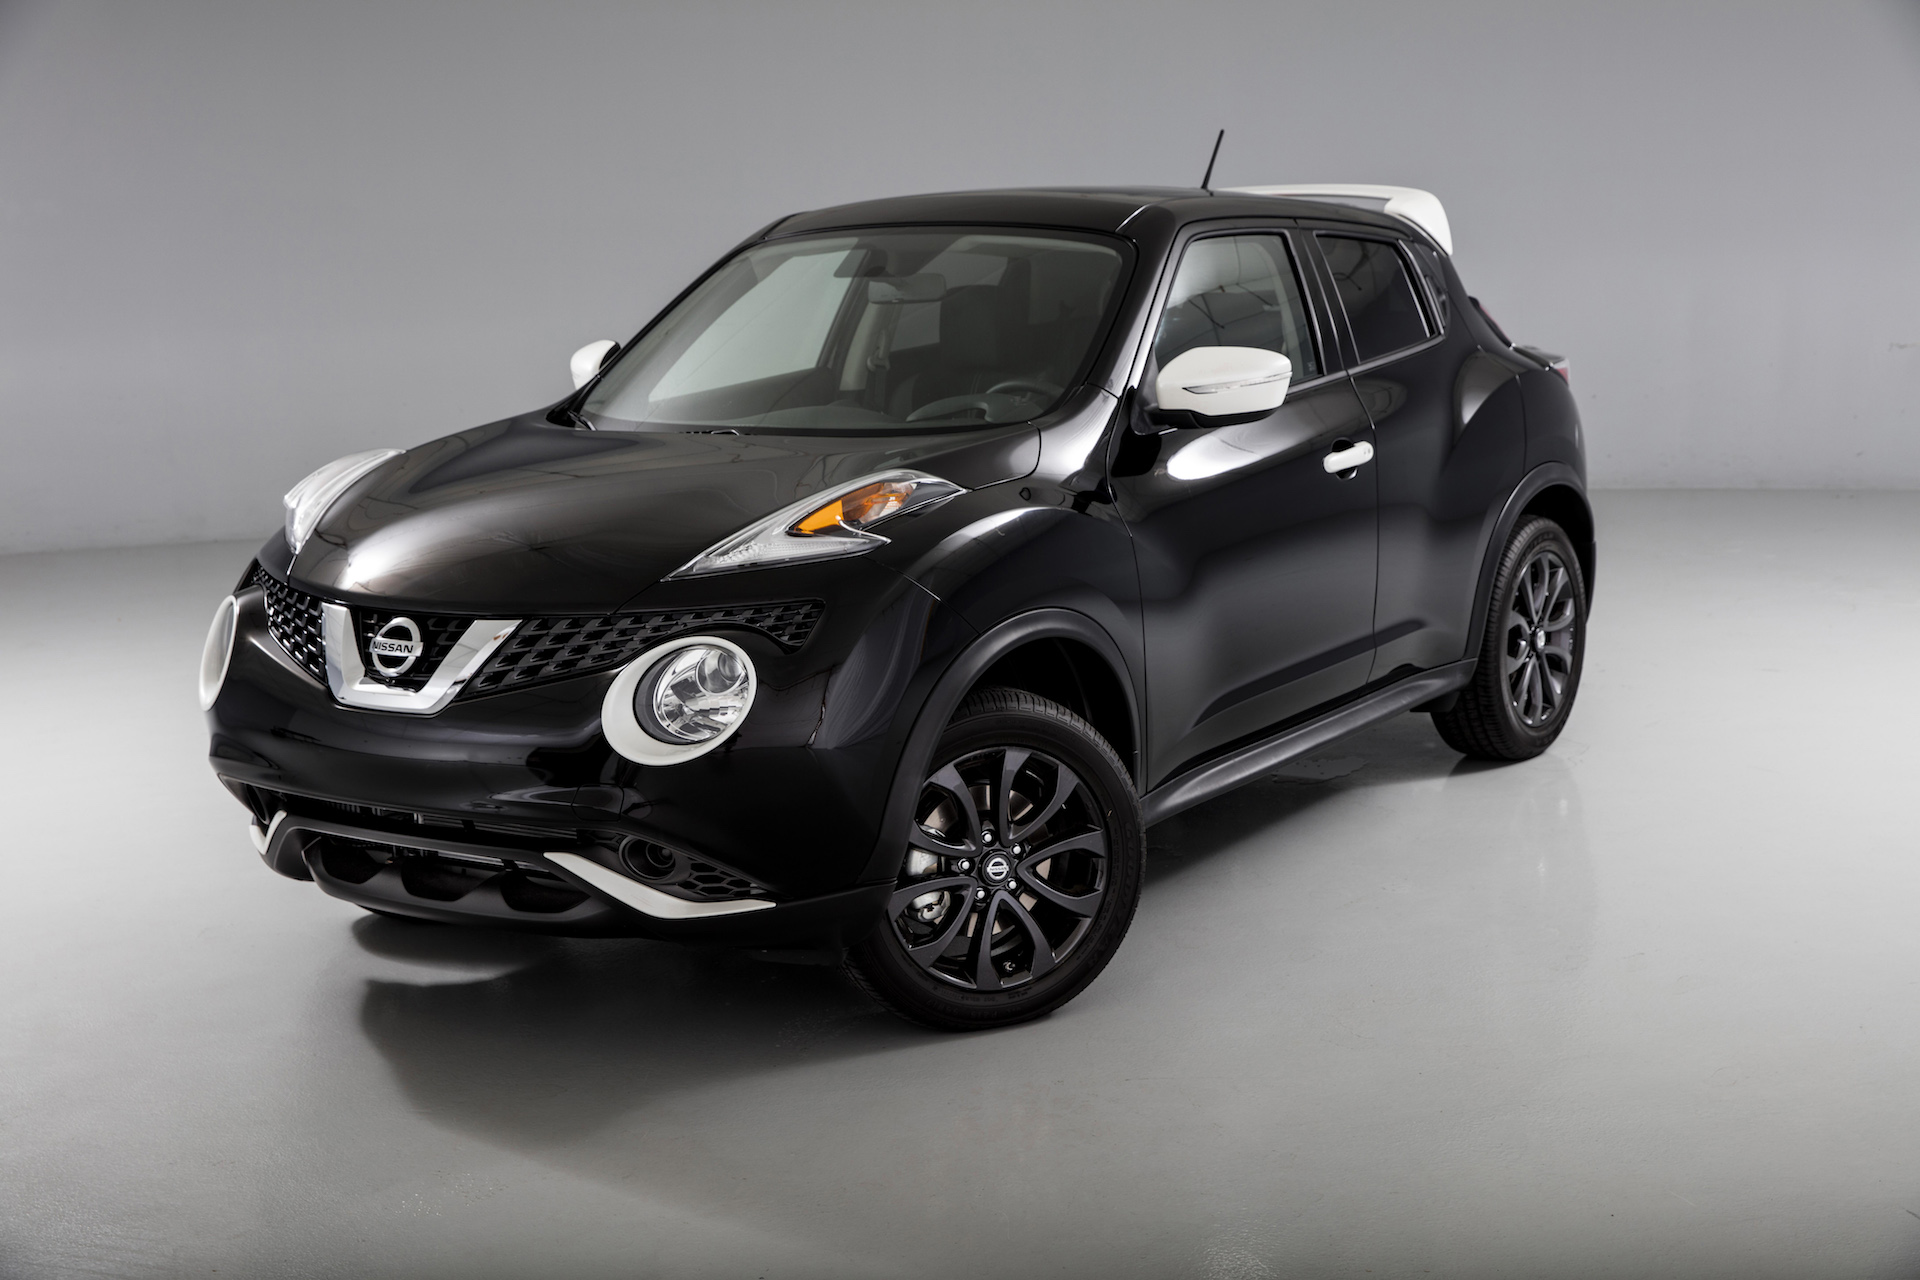 2017 Nissan Juke Features Review The Car Connection